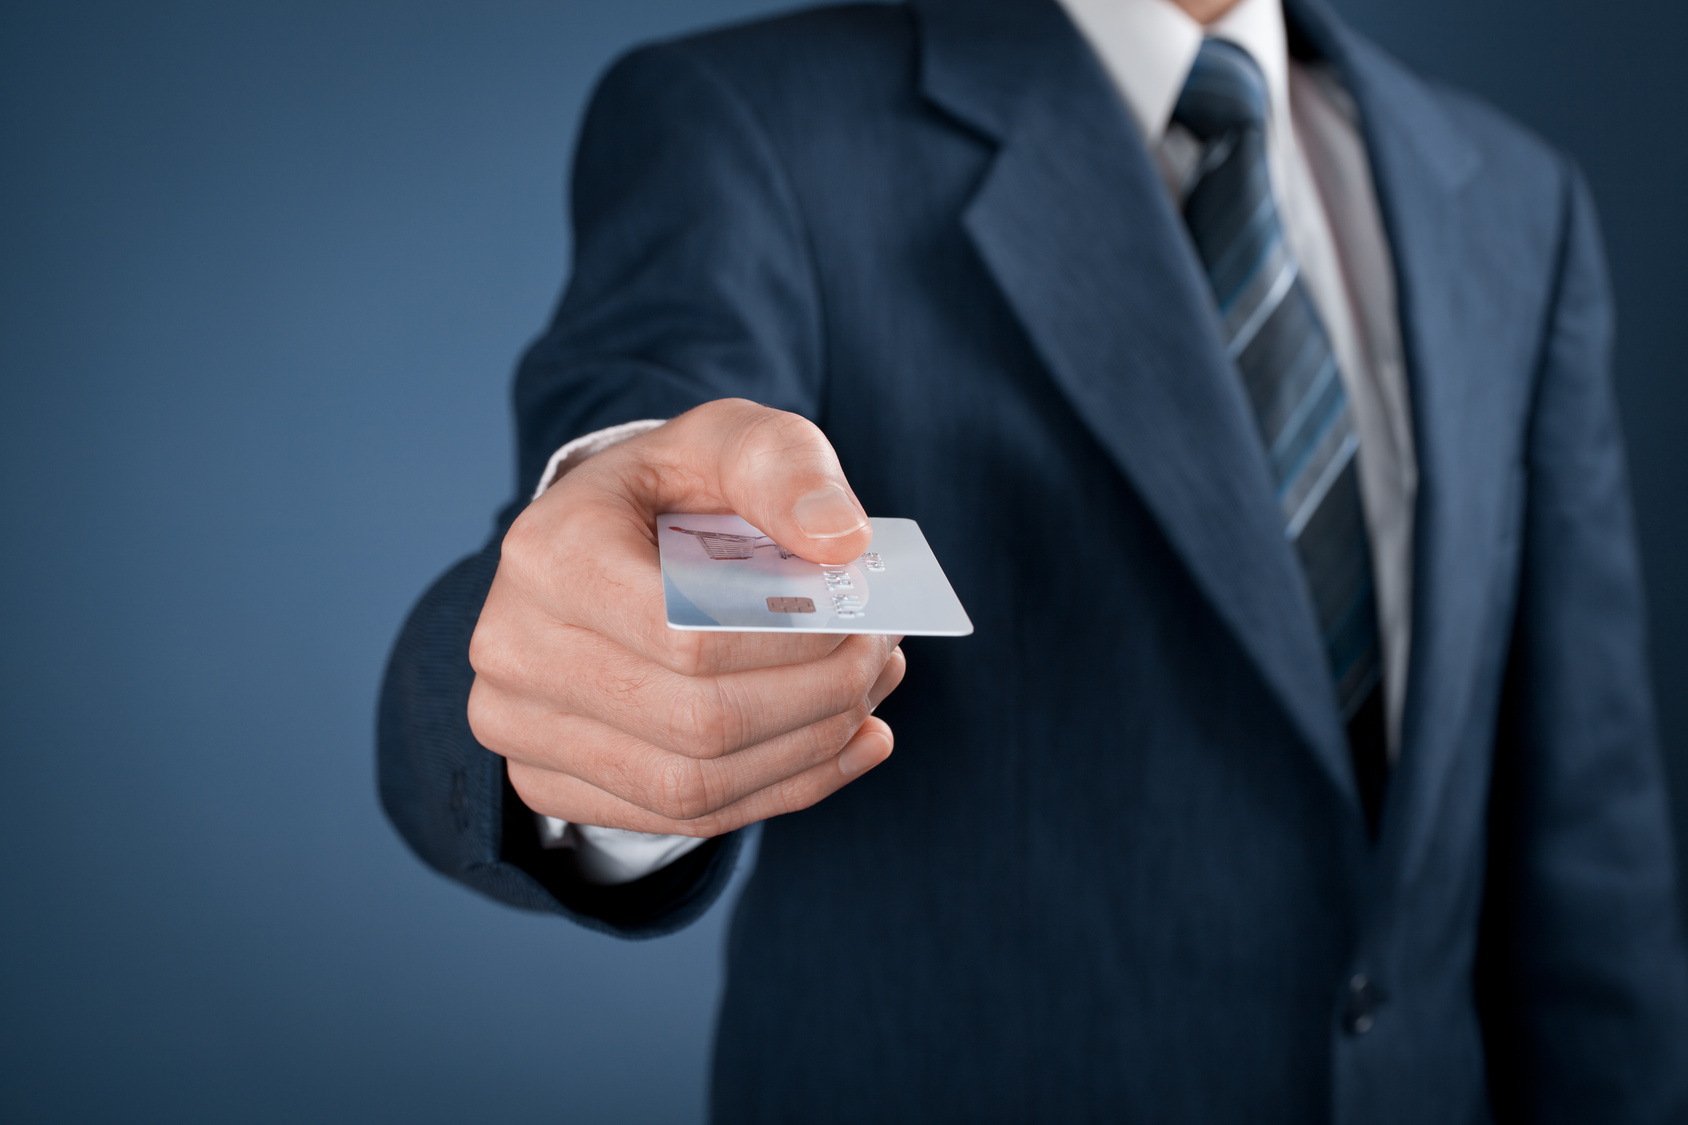 5 business credit card myths that can cost your business